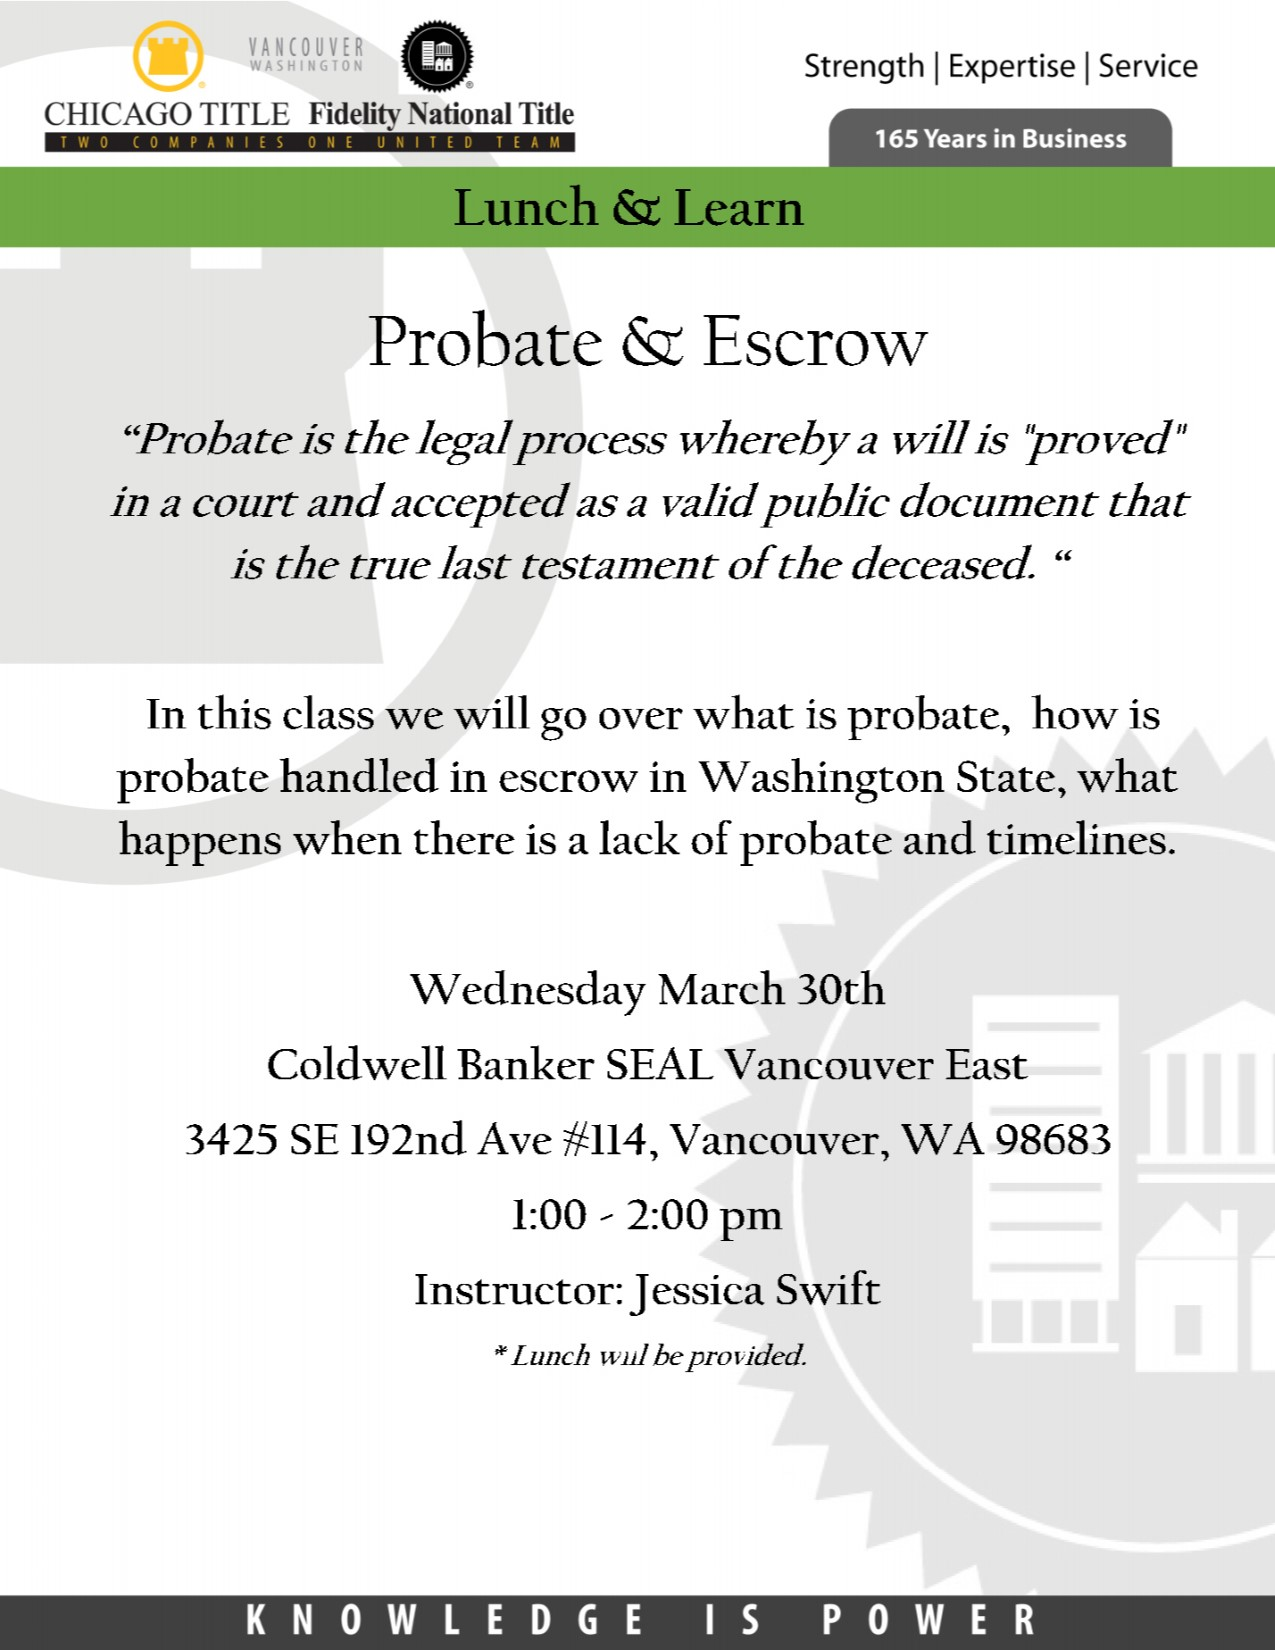 Probate_and_Escrow_Vancouver_East_March_30th